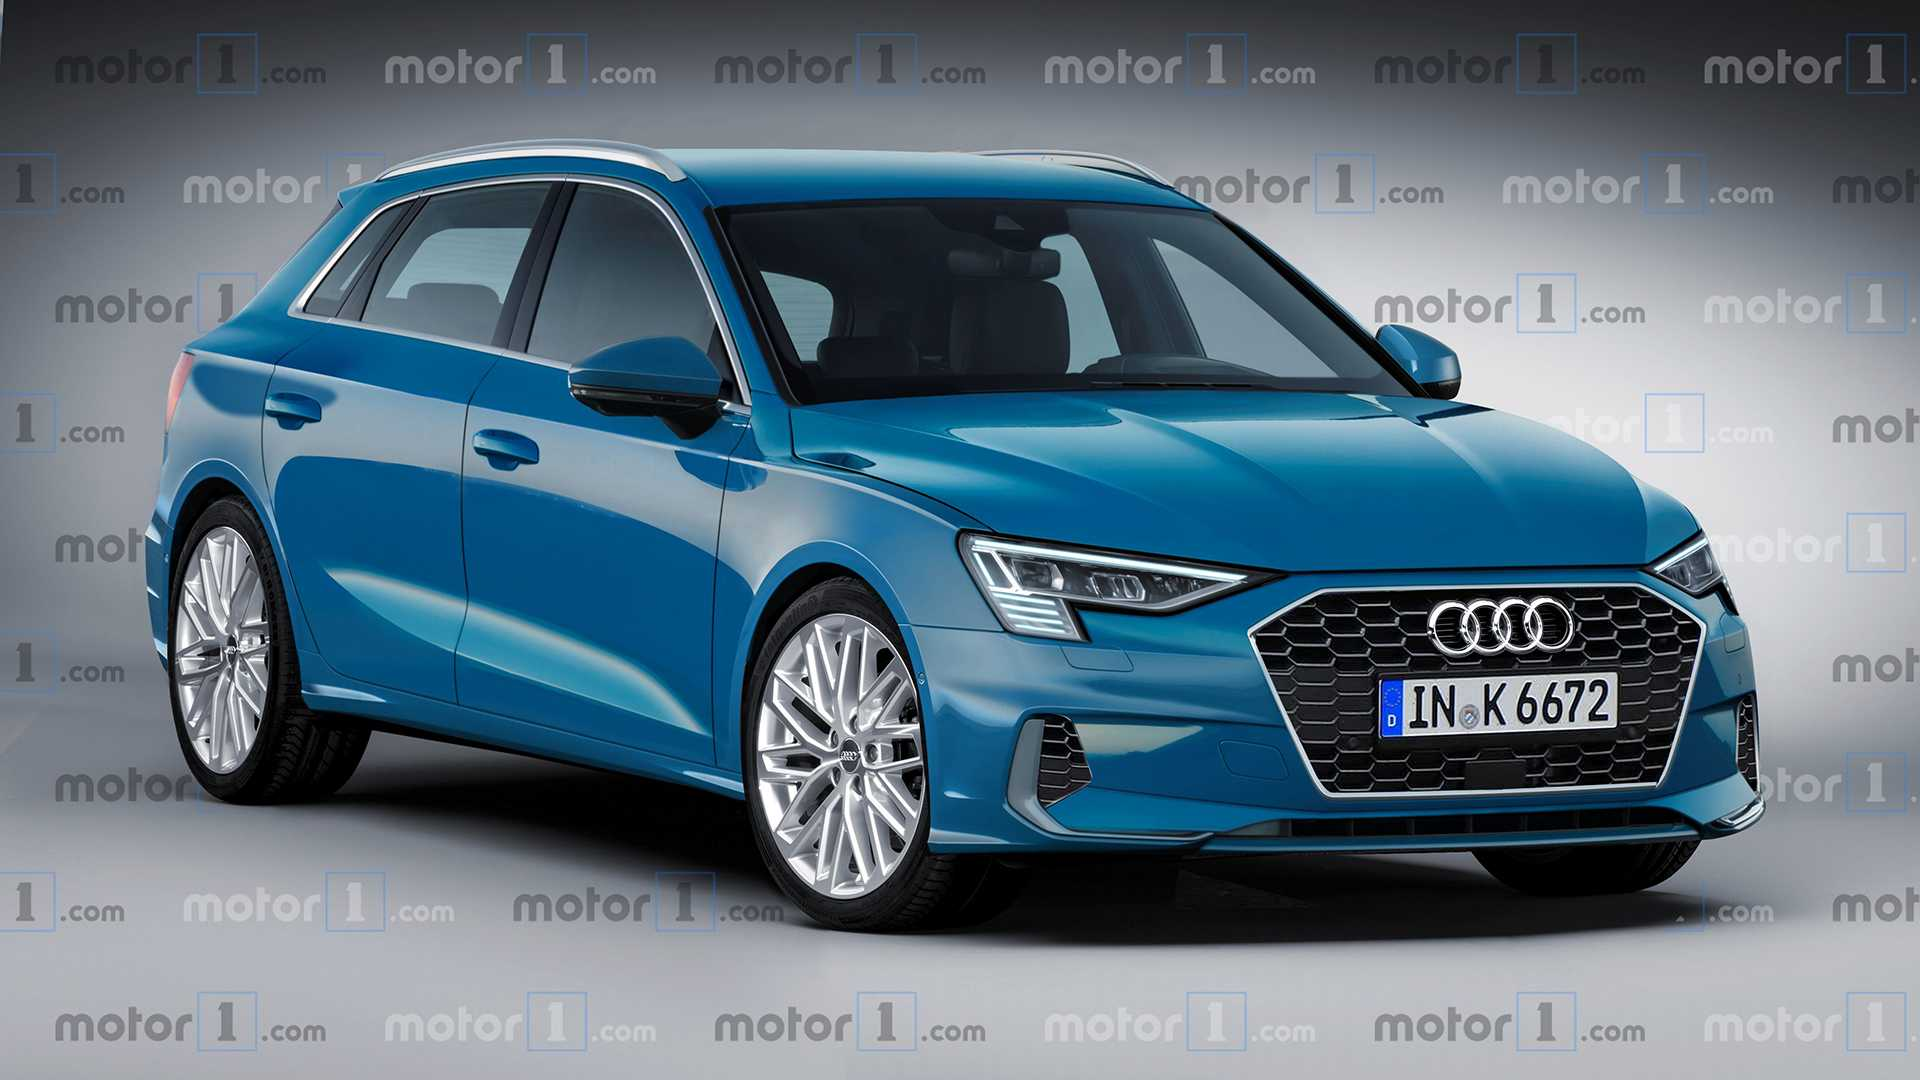 65 Best Review Audi A3 S Line 2020 Images for Audi A3 S Line 2020